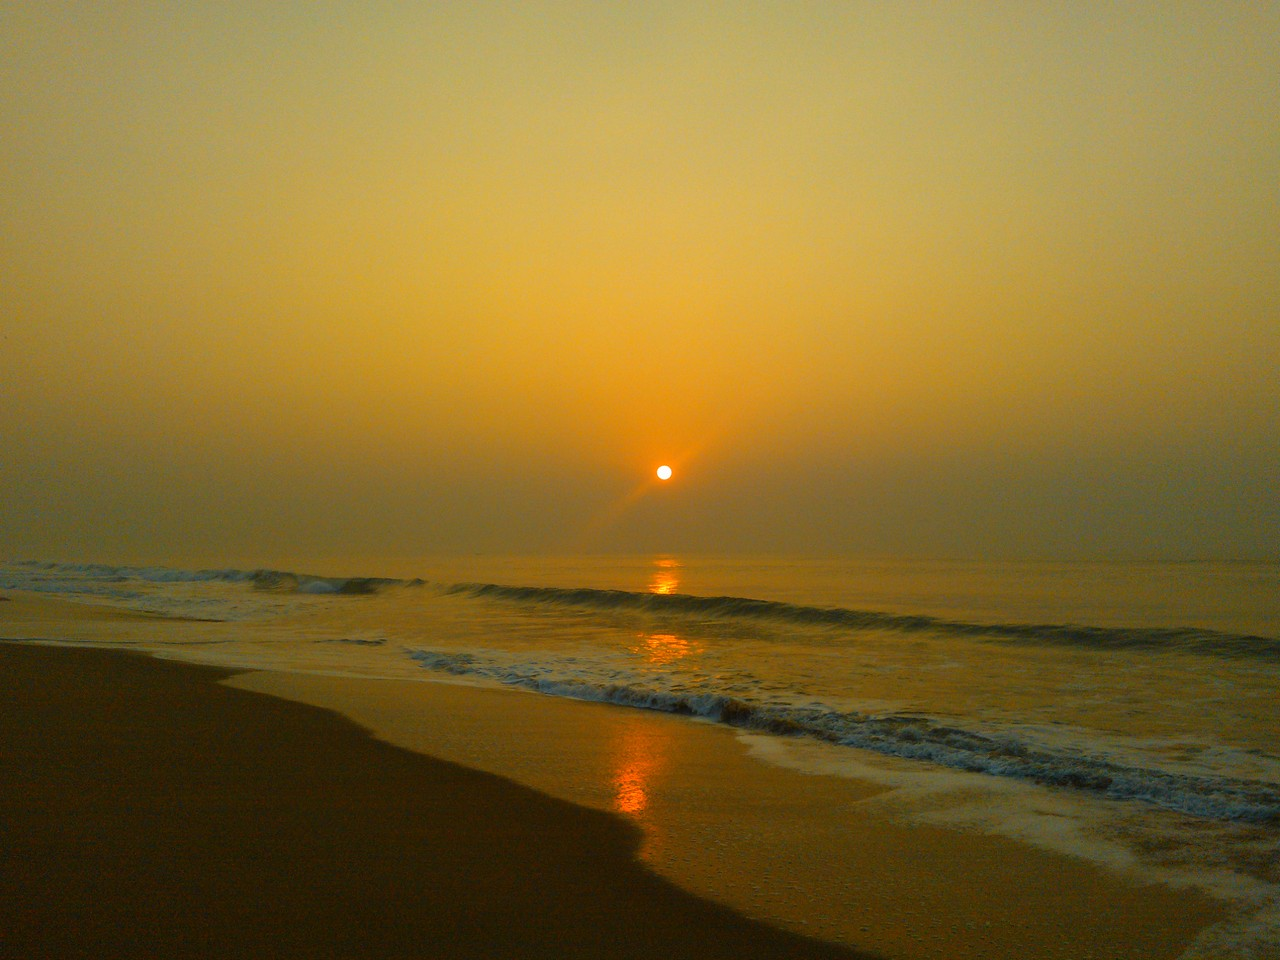 sunrise at chandrabagha beach